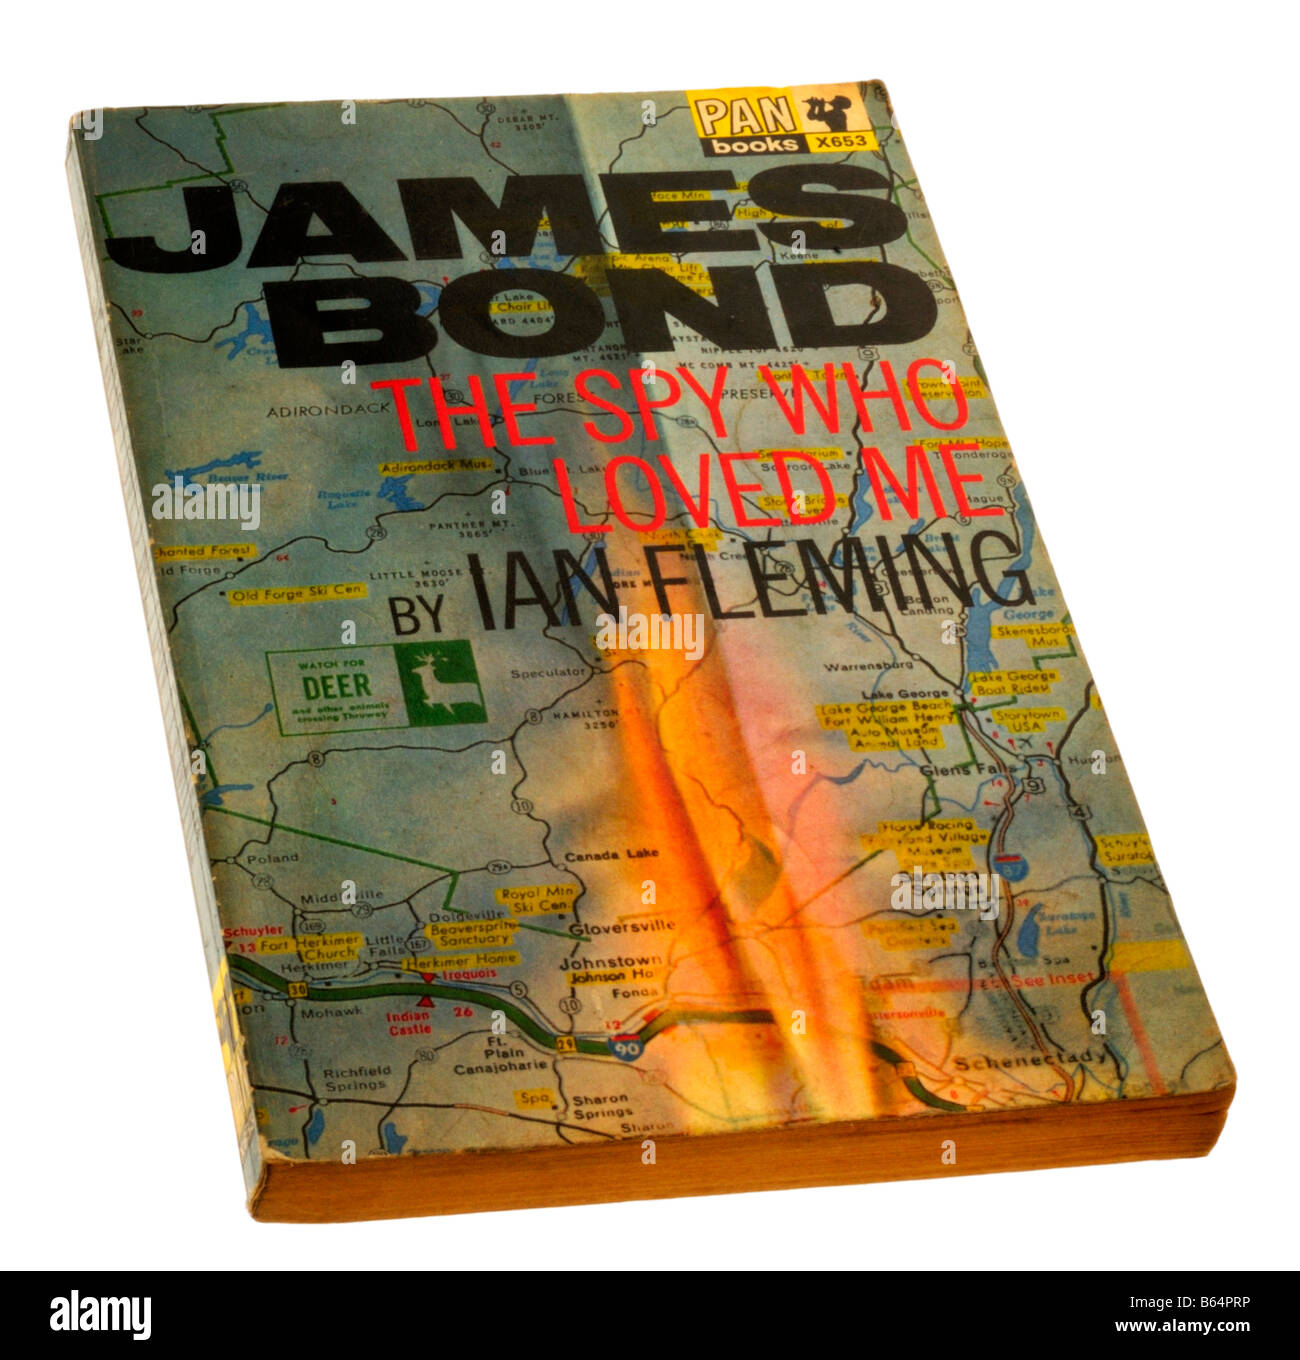 James Bond The Spy Who Loved Me paperback by Ian Fleming - Stock Image